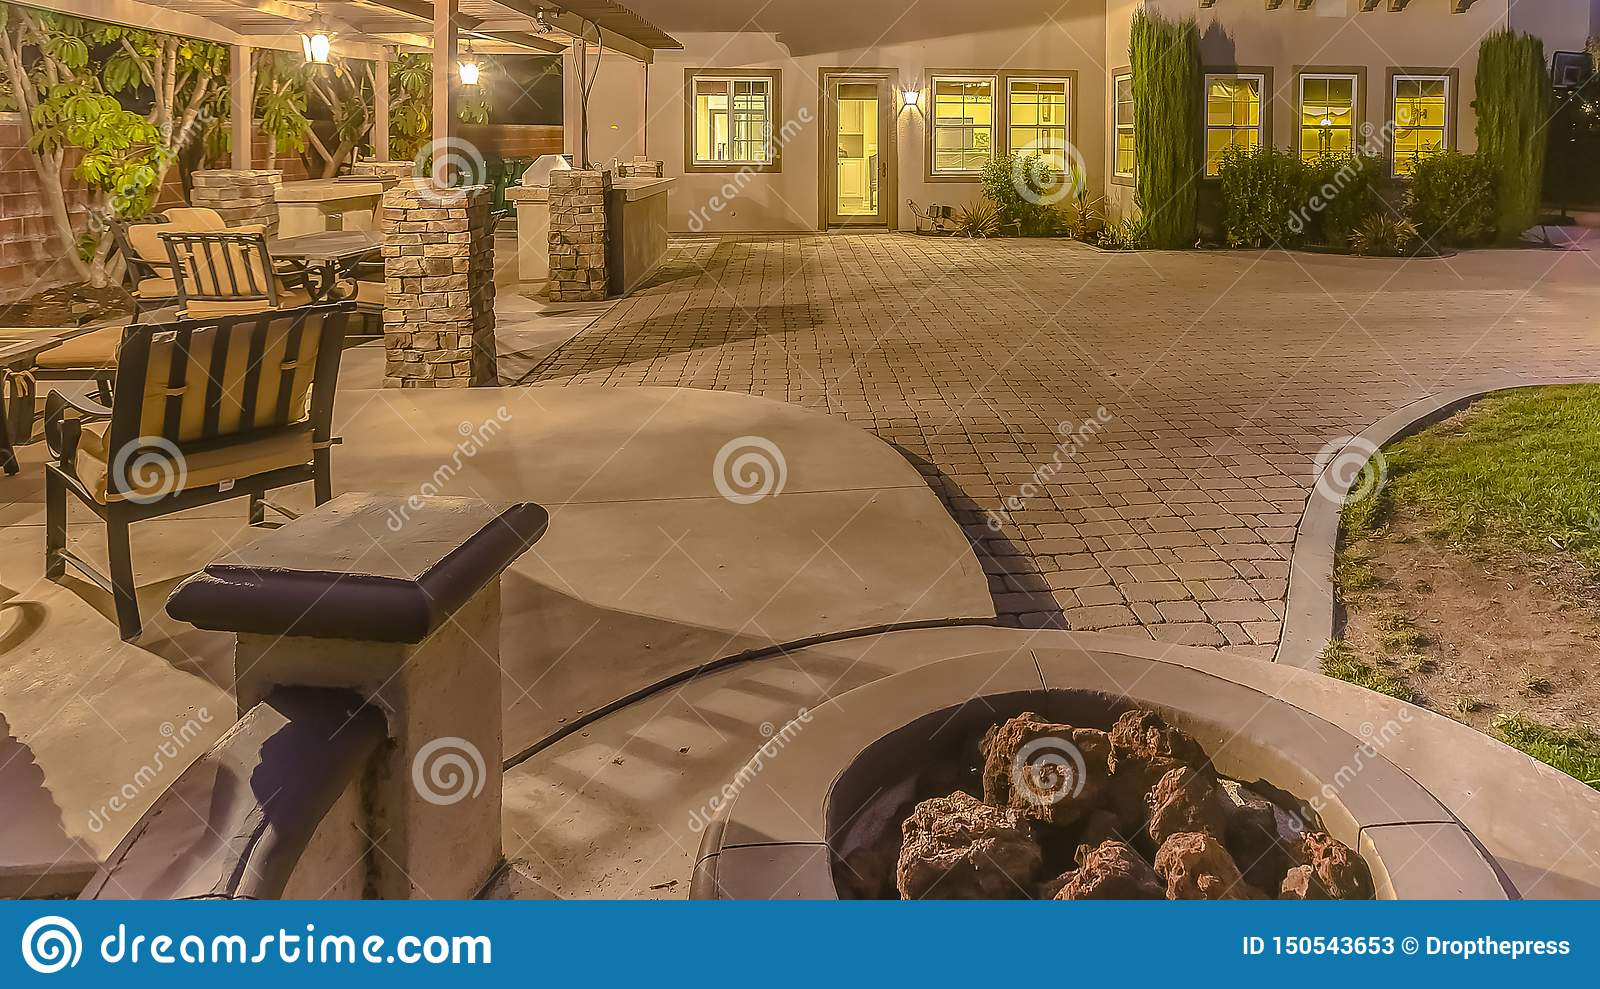 Panorama Frame Illuminated House With A Patio Accomodating An Outdoor Dining Area And Fire Pit Stock Image Image Of Pergola Grass 150543653